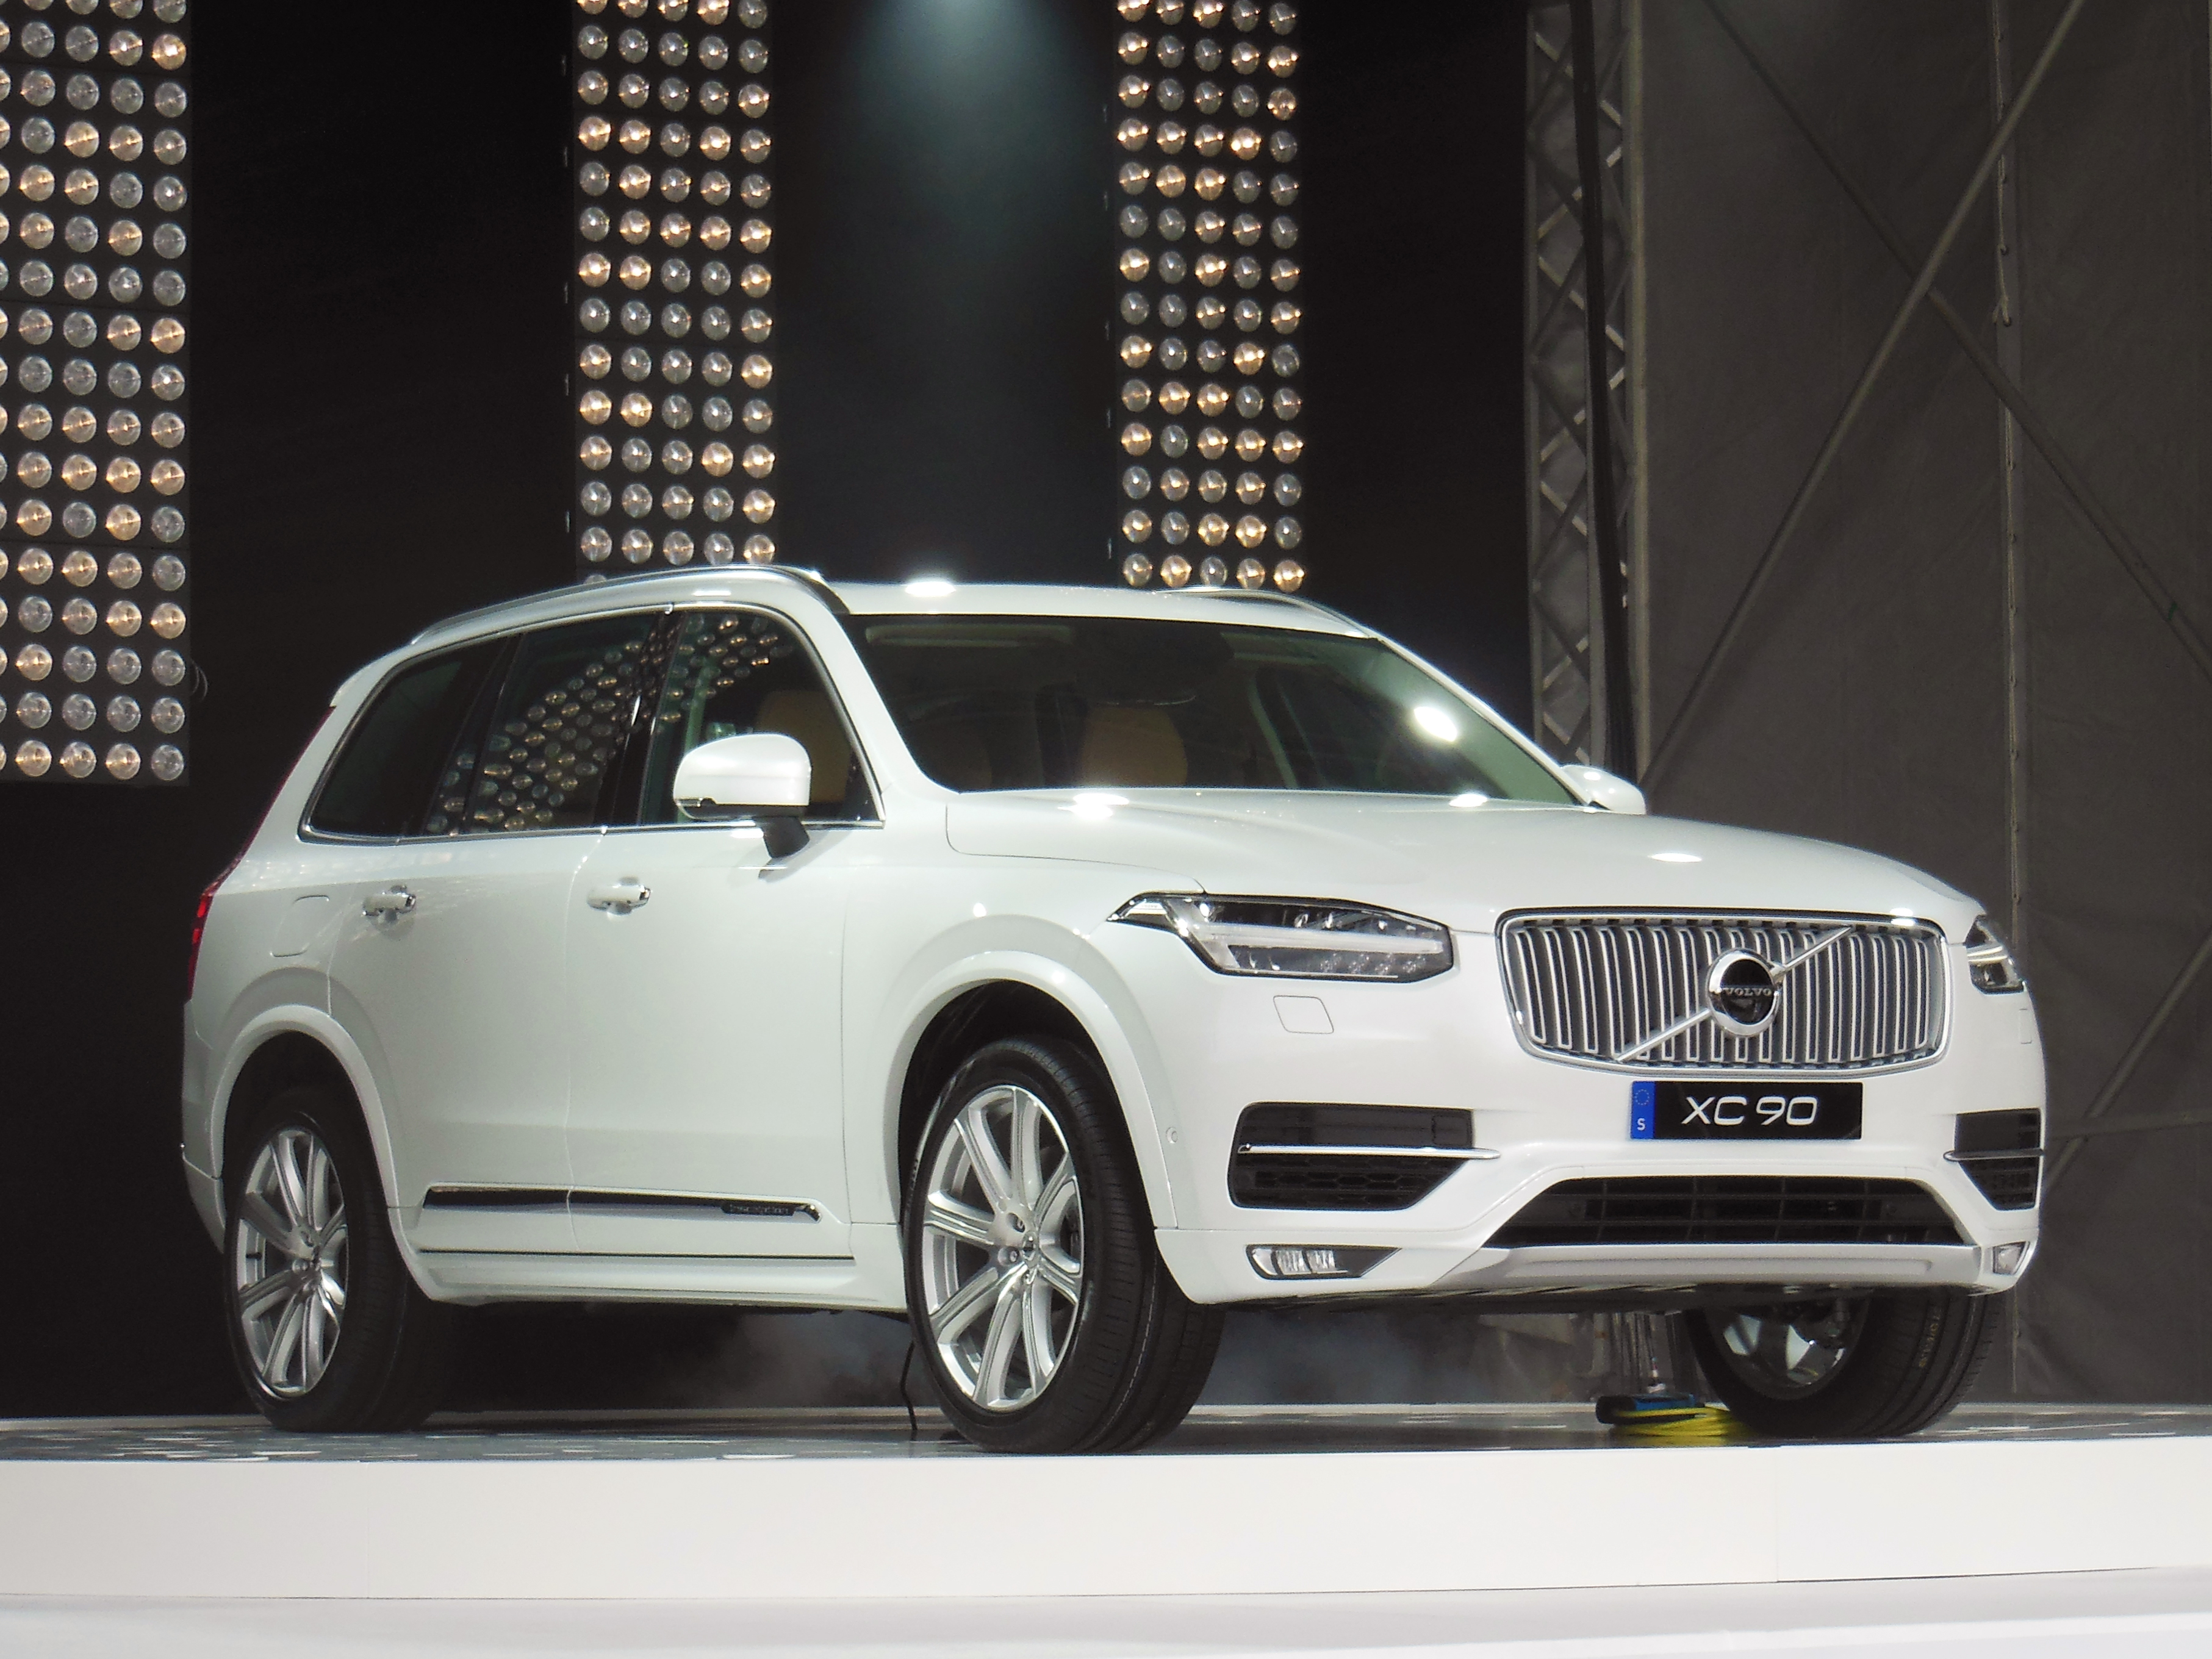 File:Volvo XC90 II, August 2014, 01.jpg - Wikimedia Commons